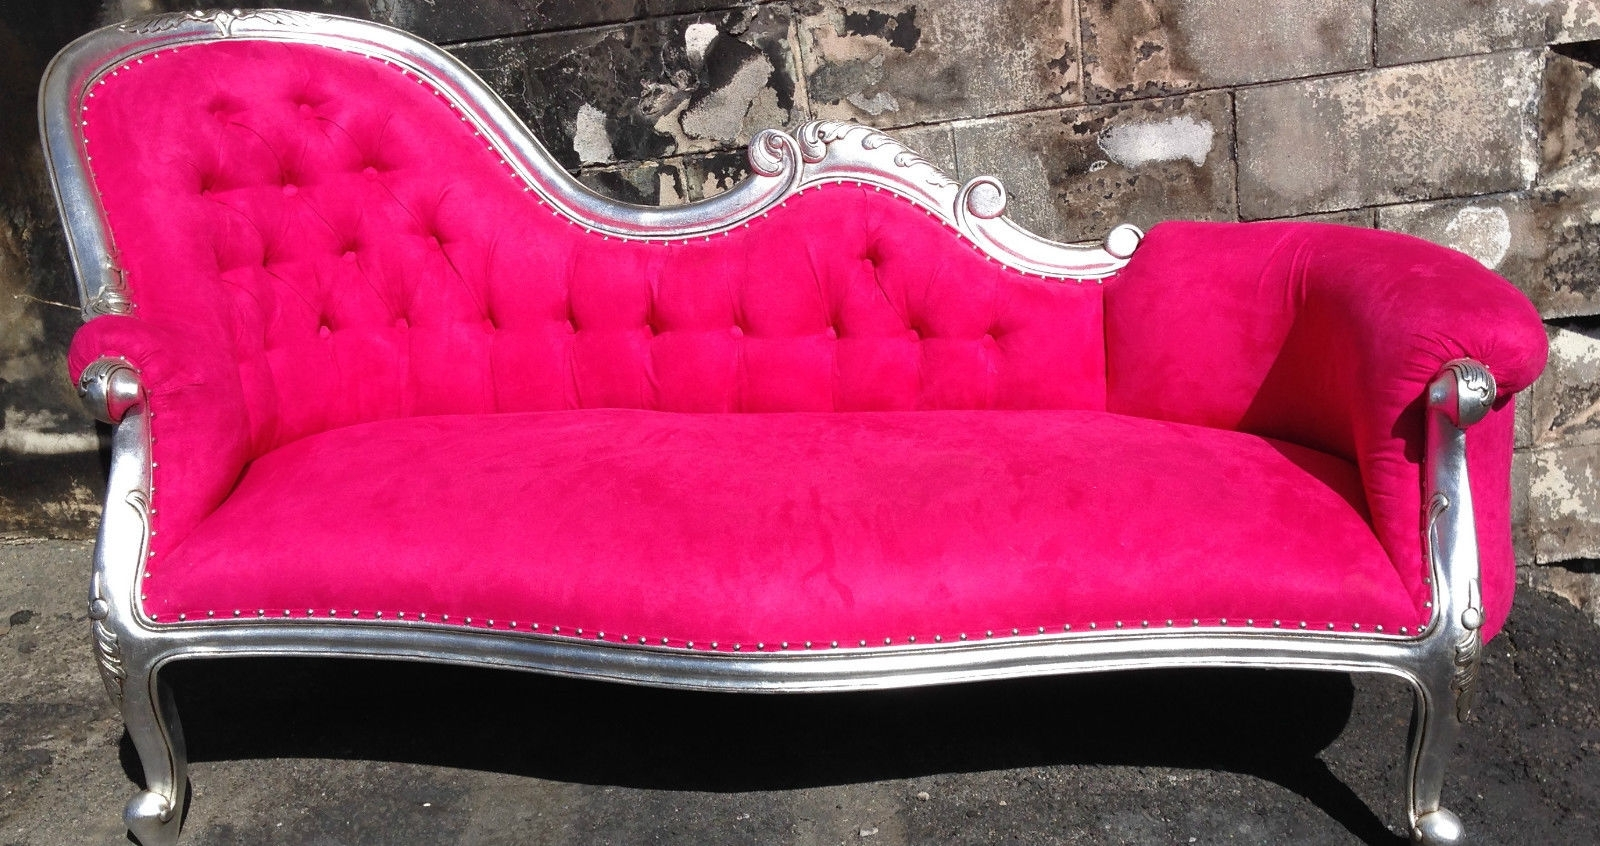 Most Recent Pink Chaises Within Rockstar Pink Chaise Lounge Chesterfield Sofa Queen Loveseat Couch (View 3 of 15)